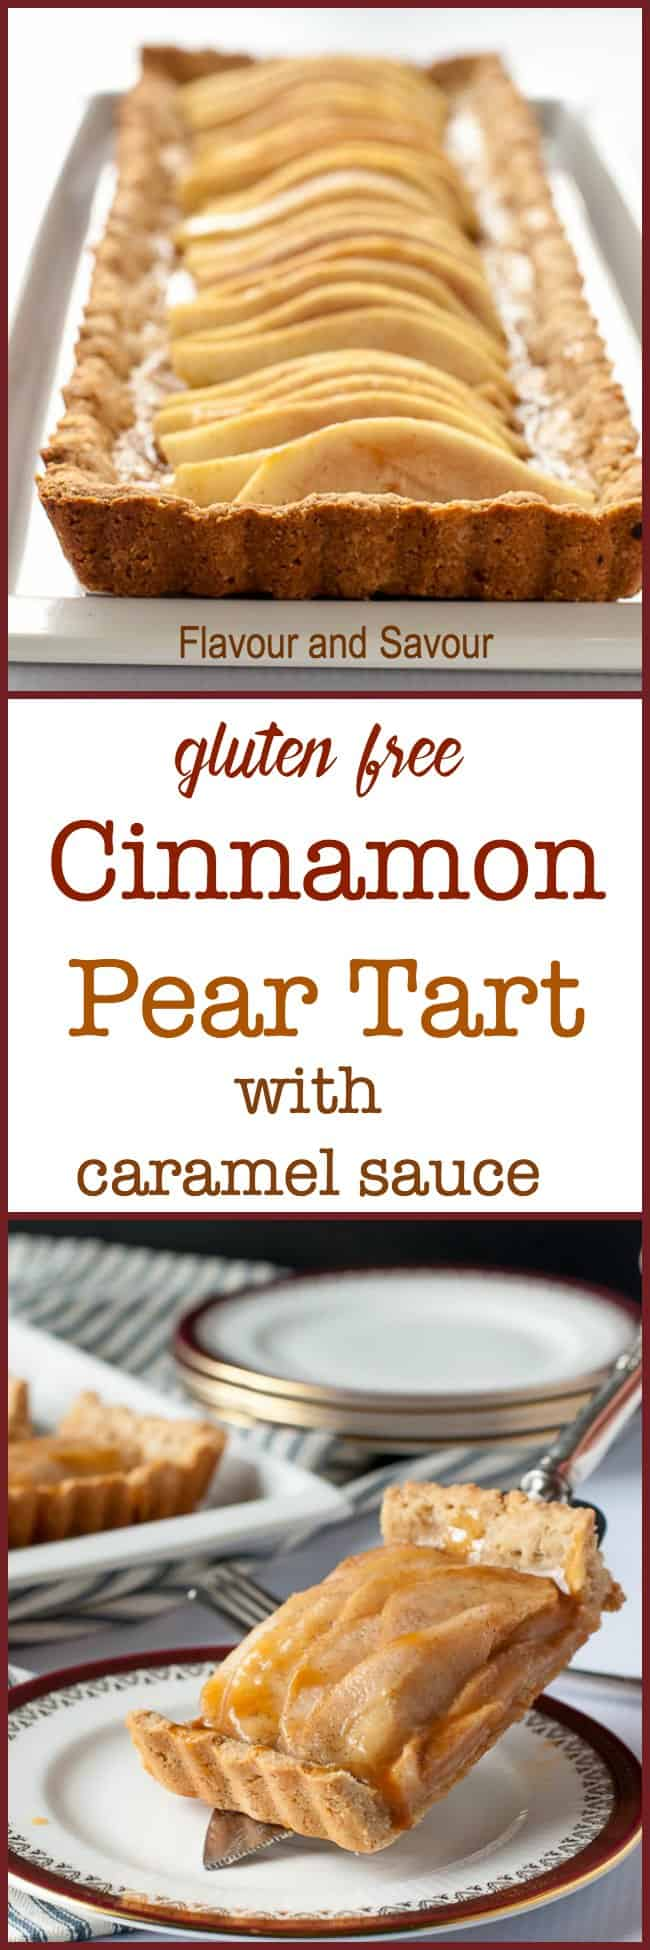 This Gluten-Free Cinnamon Pear Tart is made with a tender almond flour and oat flour crust, sweetened with maple syrup and drizzled with caramel sauce. #GlutenFree #pear #tart #caramel sauce #AlmondFlour